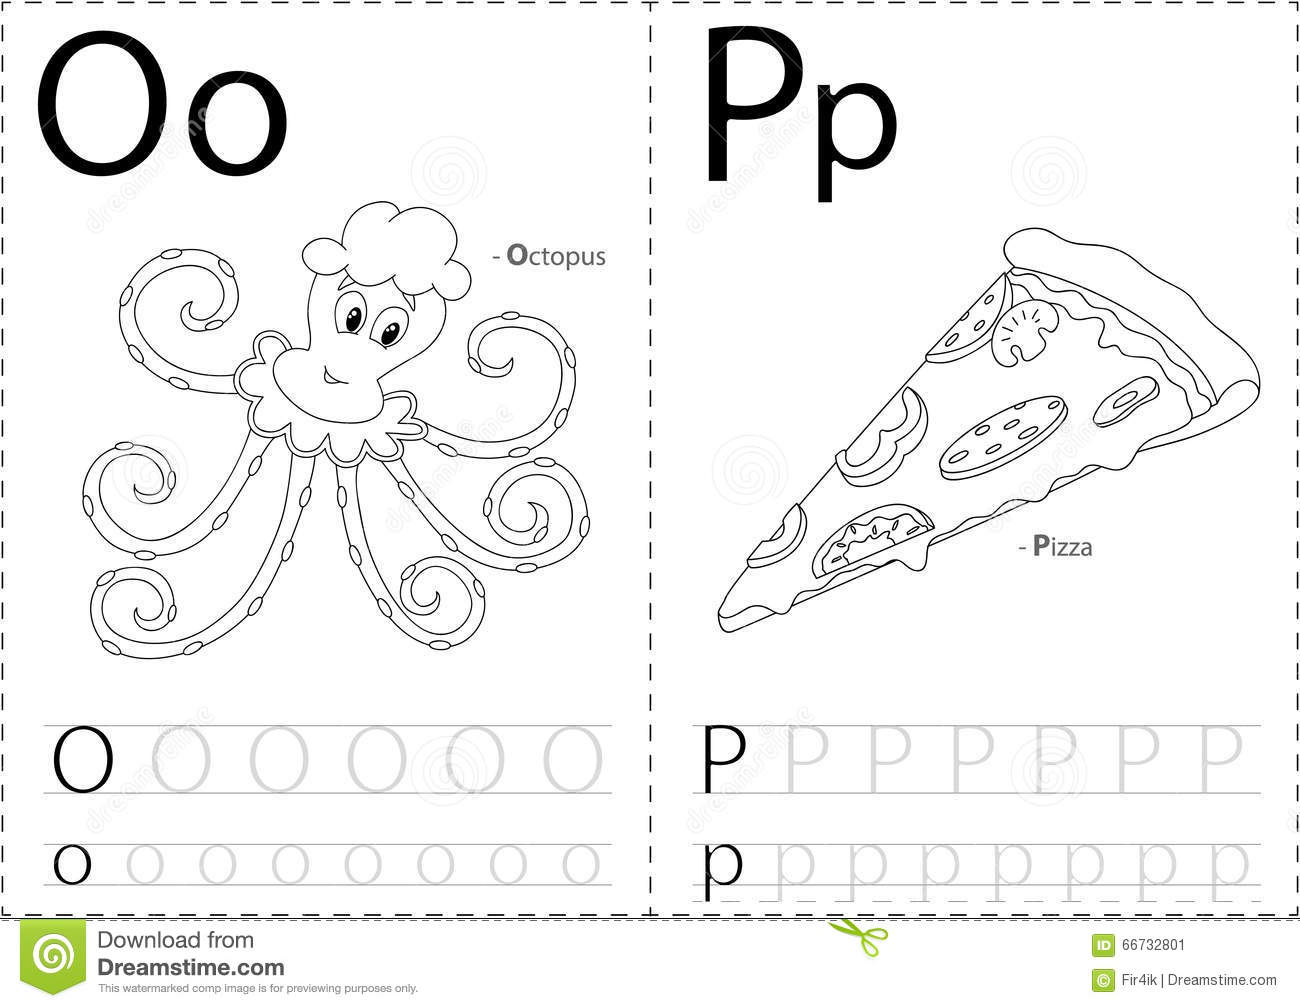 Cartoon Octopus And Pizza. Alphabet Tracing Worksheet